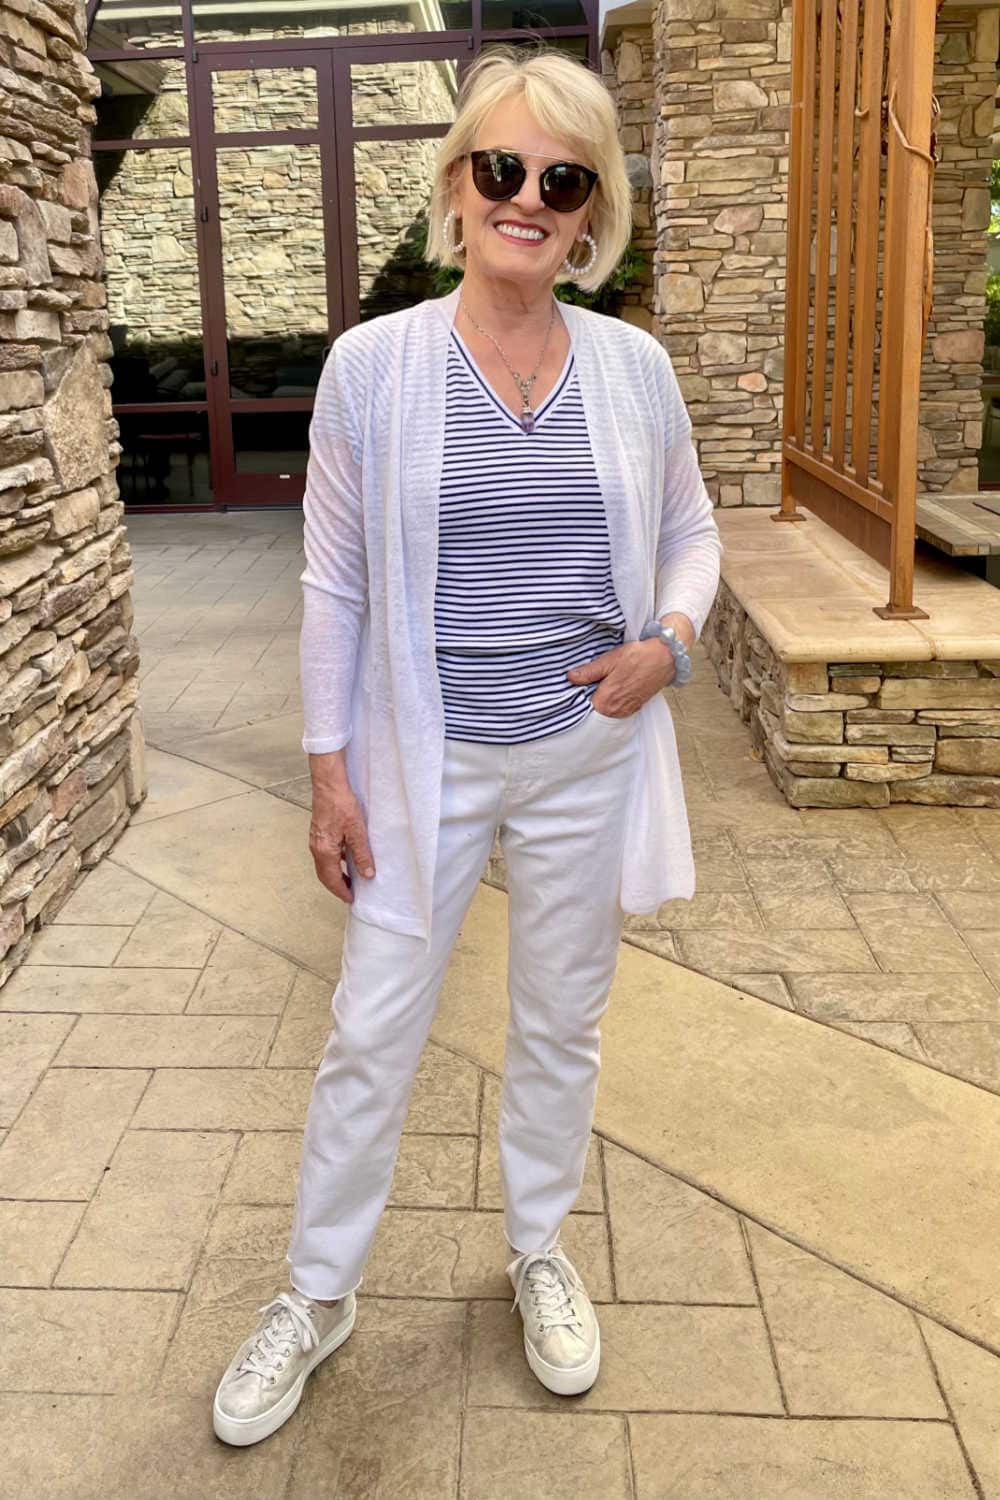 blonde woman wearing white sweater, white jeans and gold sneakers in patio